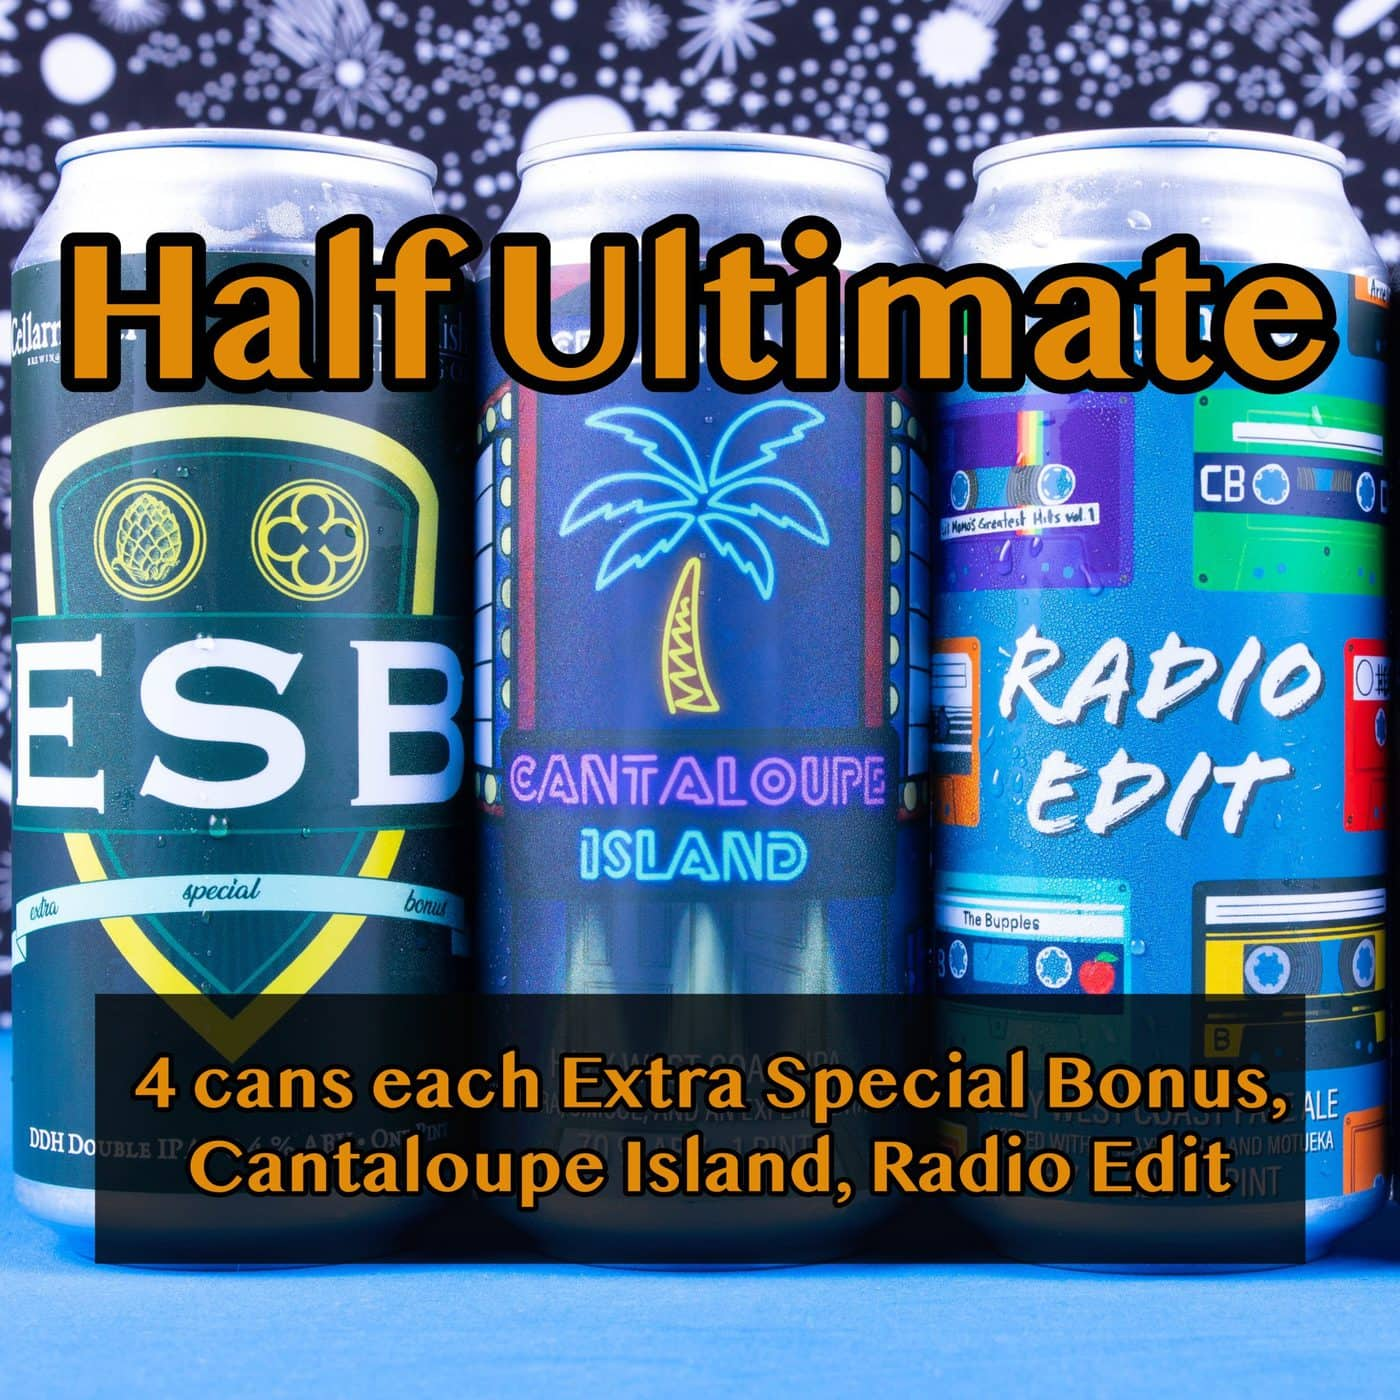 HALF CASE 12 CANS – Half Ultimate – 4 Radio Edit Pale Ale, 4 Cantaloupe Island IPA And 4 Extra Special Bonus DDH DIPA… SHIPPING Out On WEDNESDAY 12/2 For NEXT DAY Delivery*